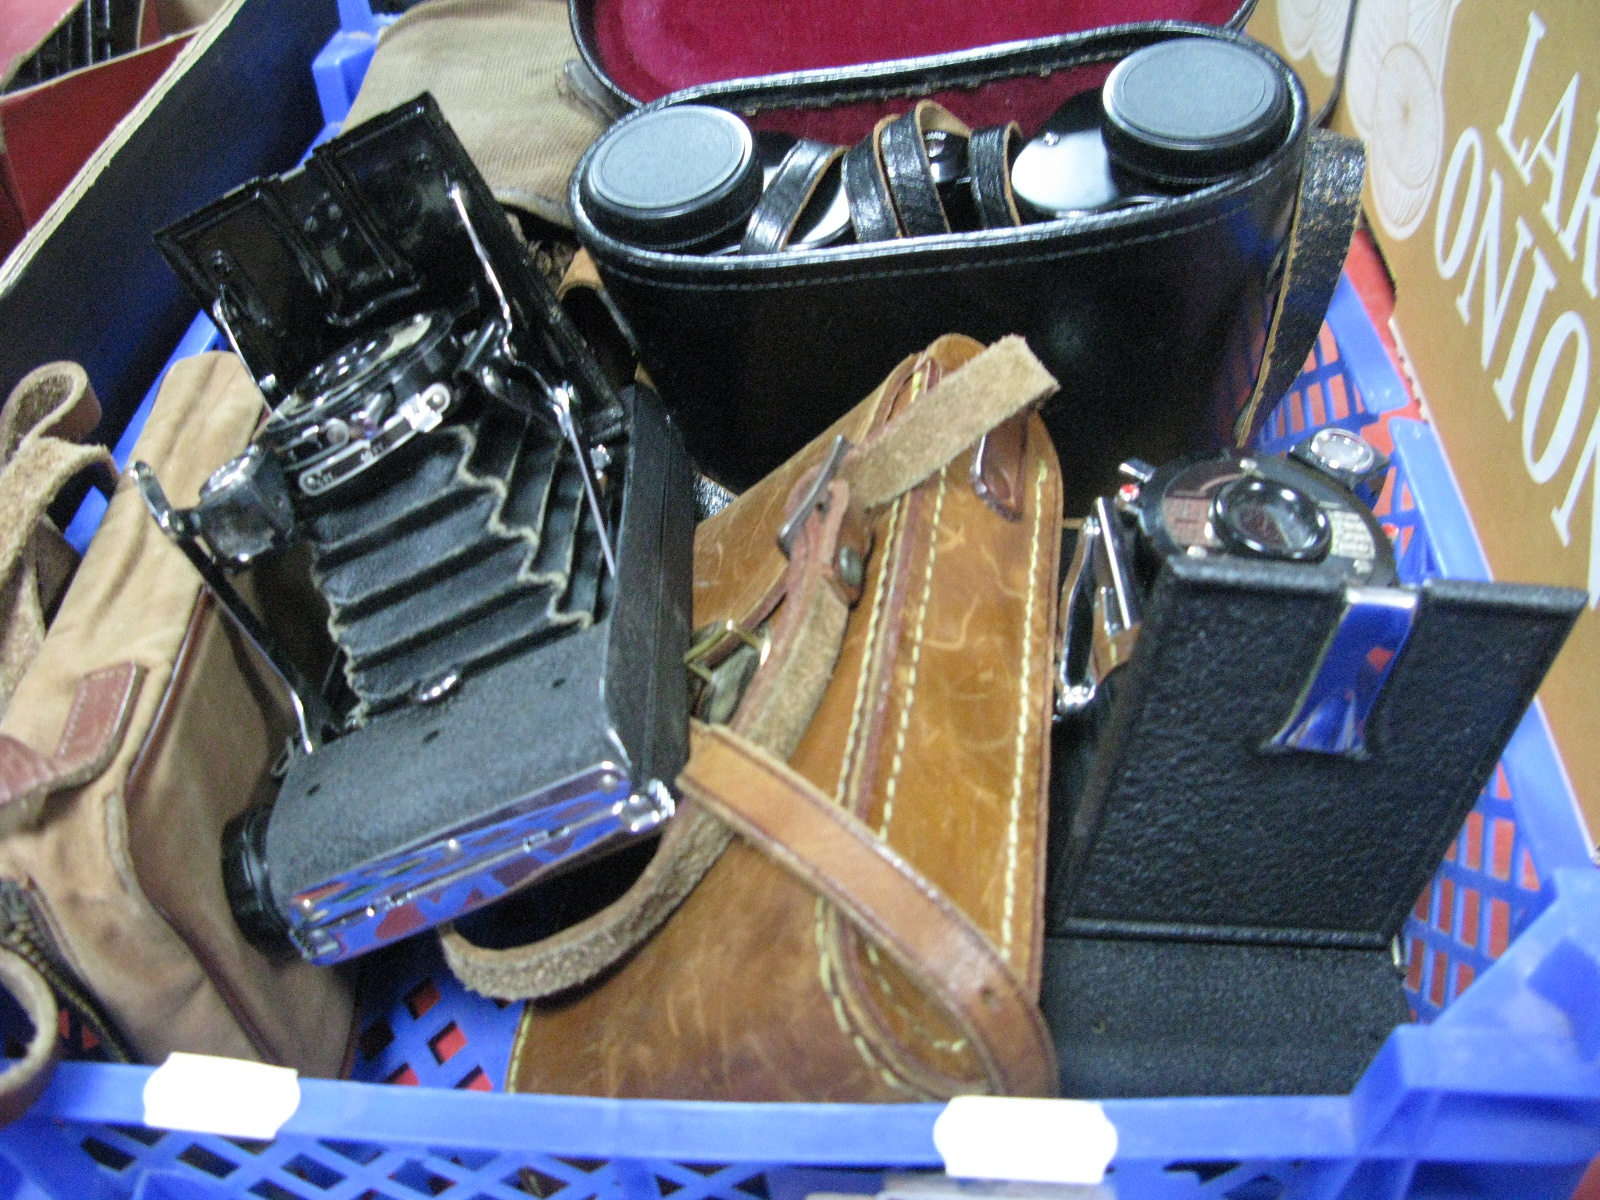 Lot 1008 - A Pair of Optimax 8 x 30 Cased Binoculars, a Penguin Eight 20 folding camera, further penguin